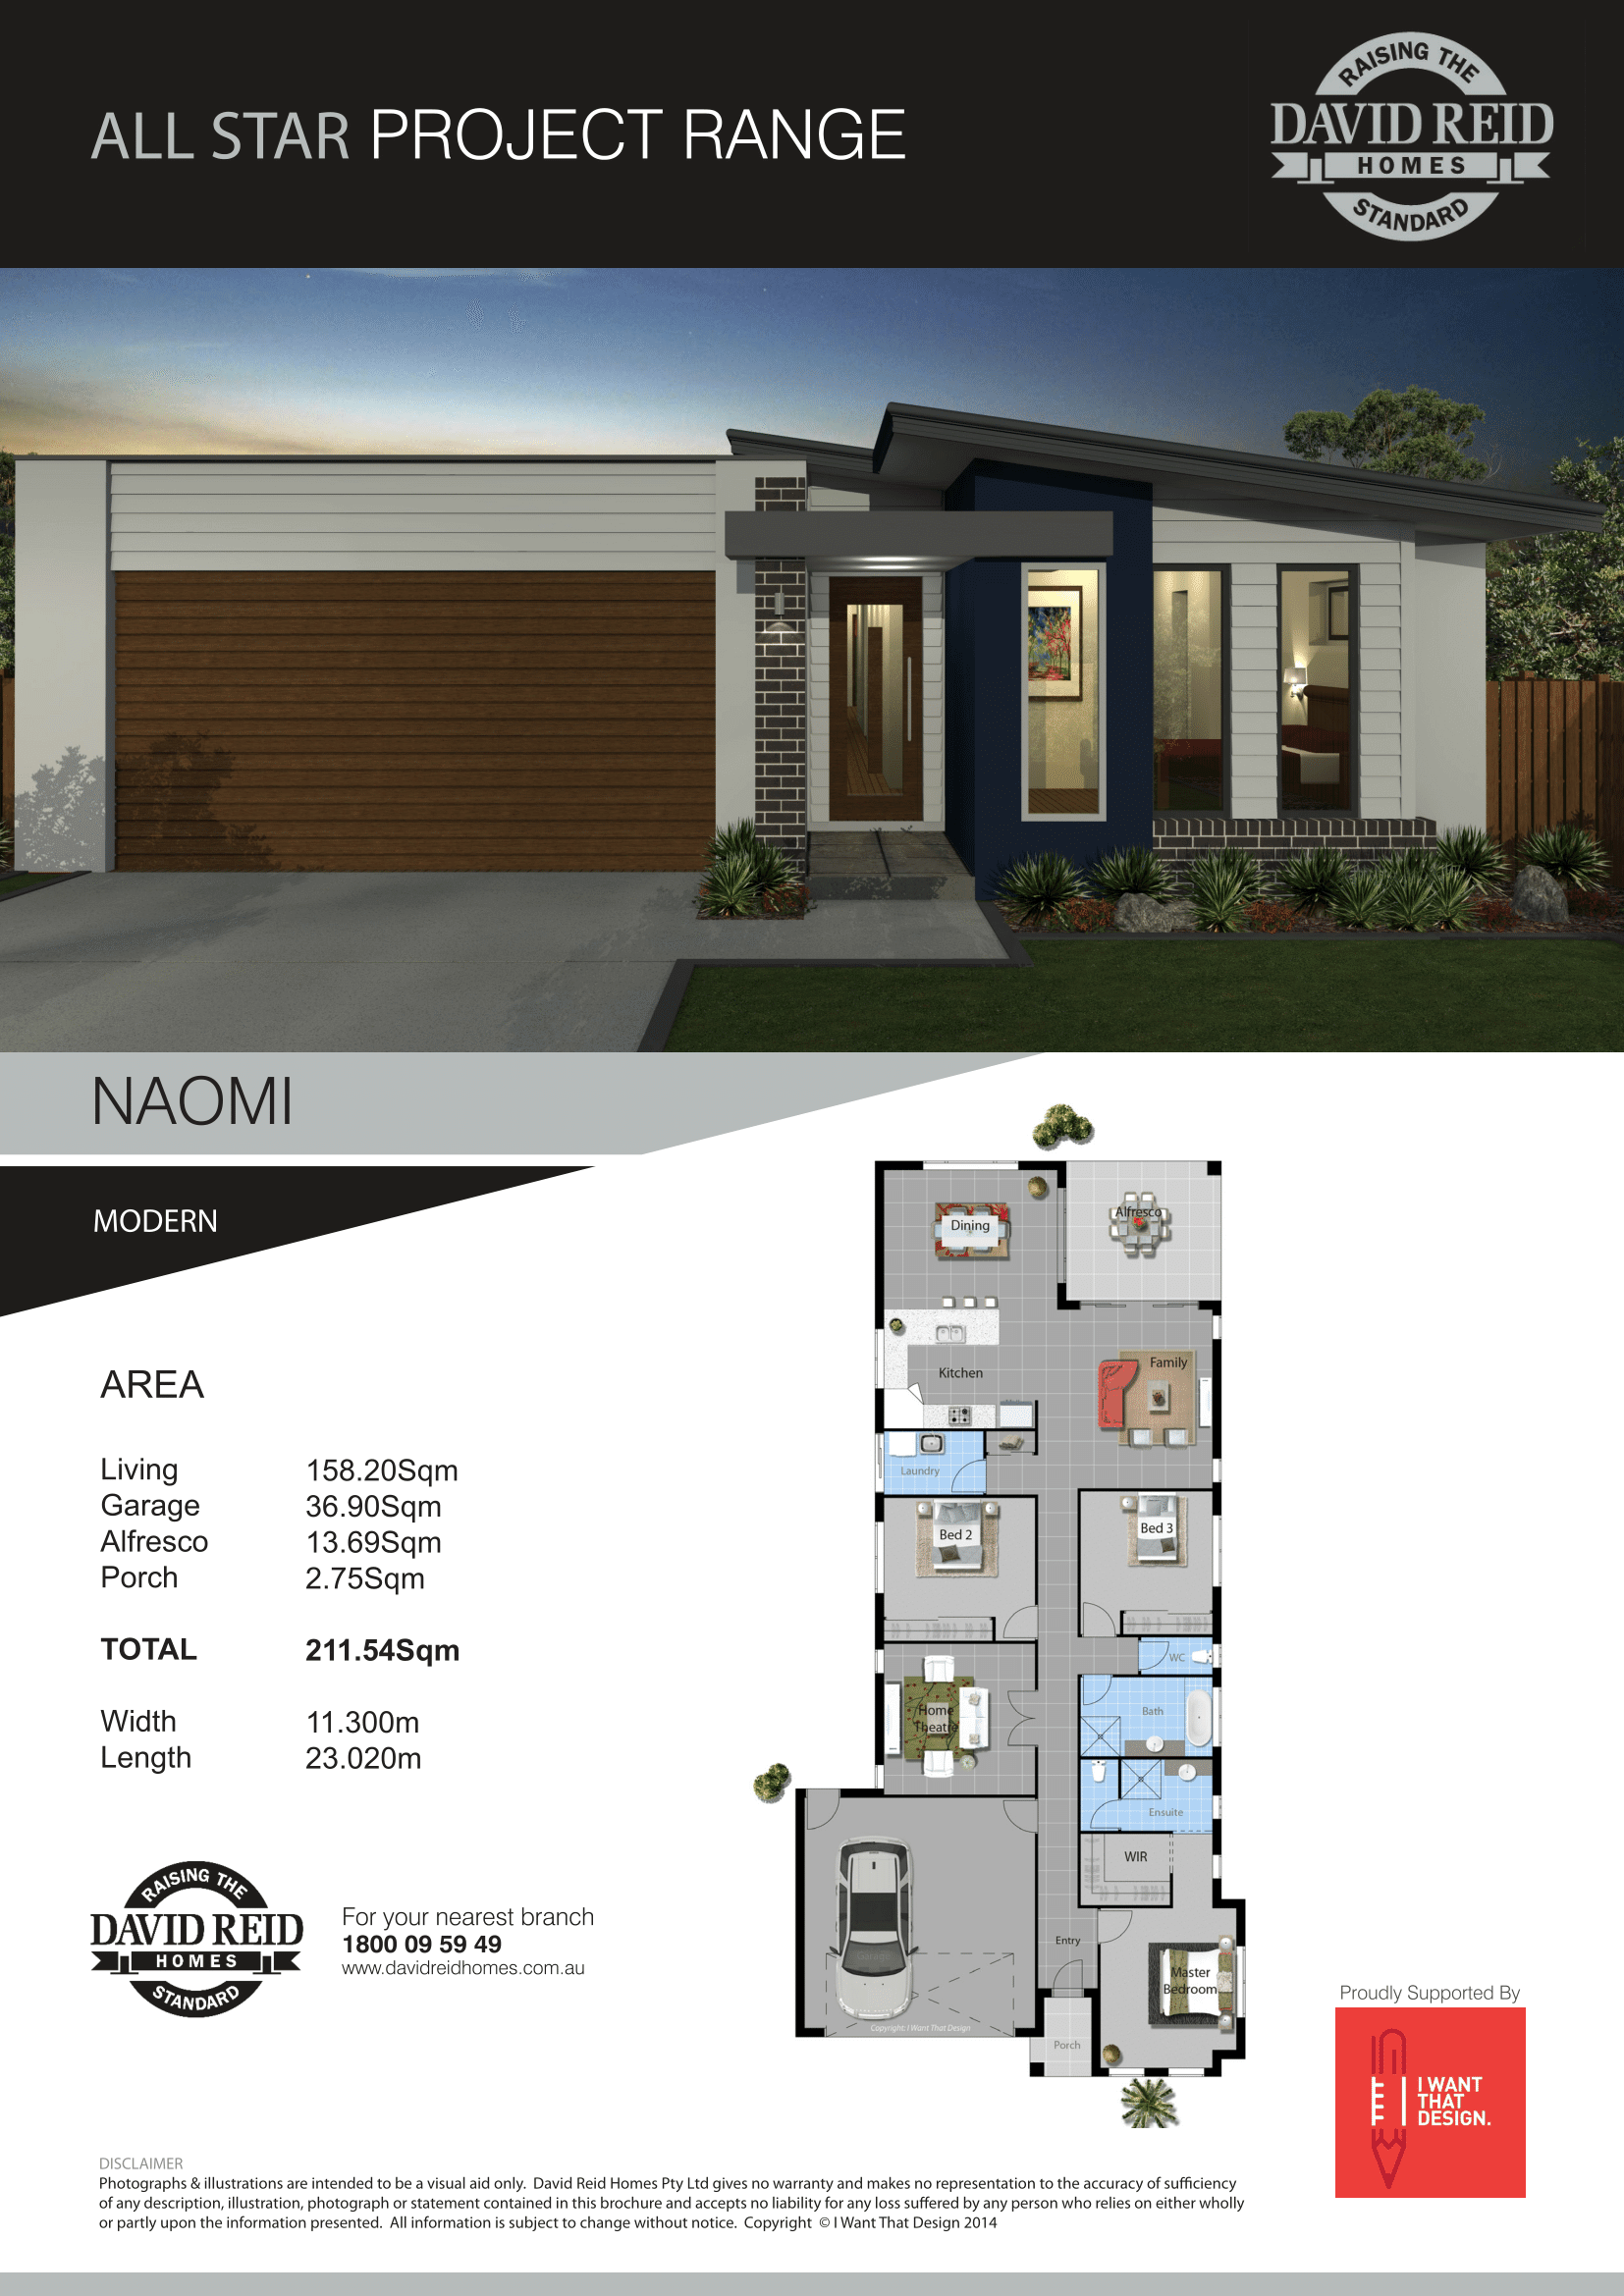 David Reid Homes nverell House and Land package Naomi Modern house specification